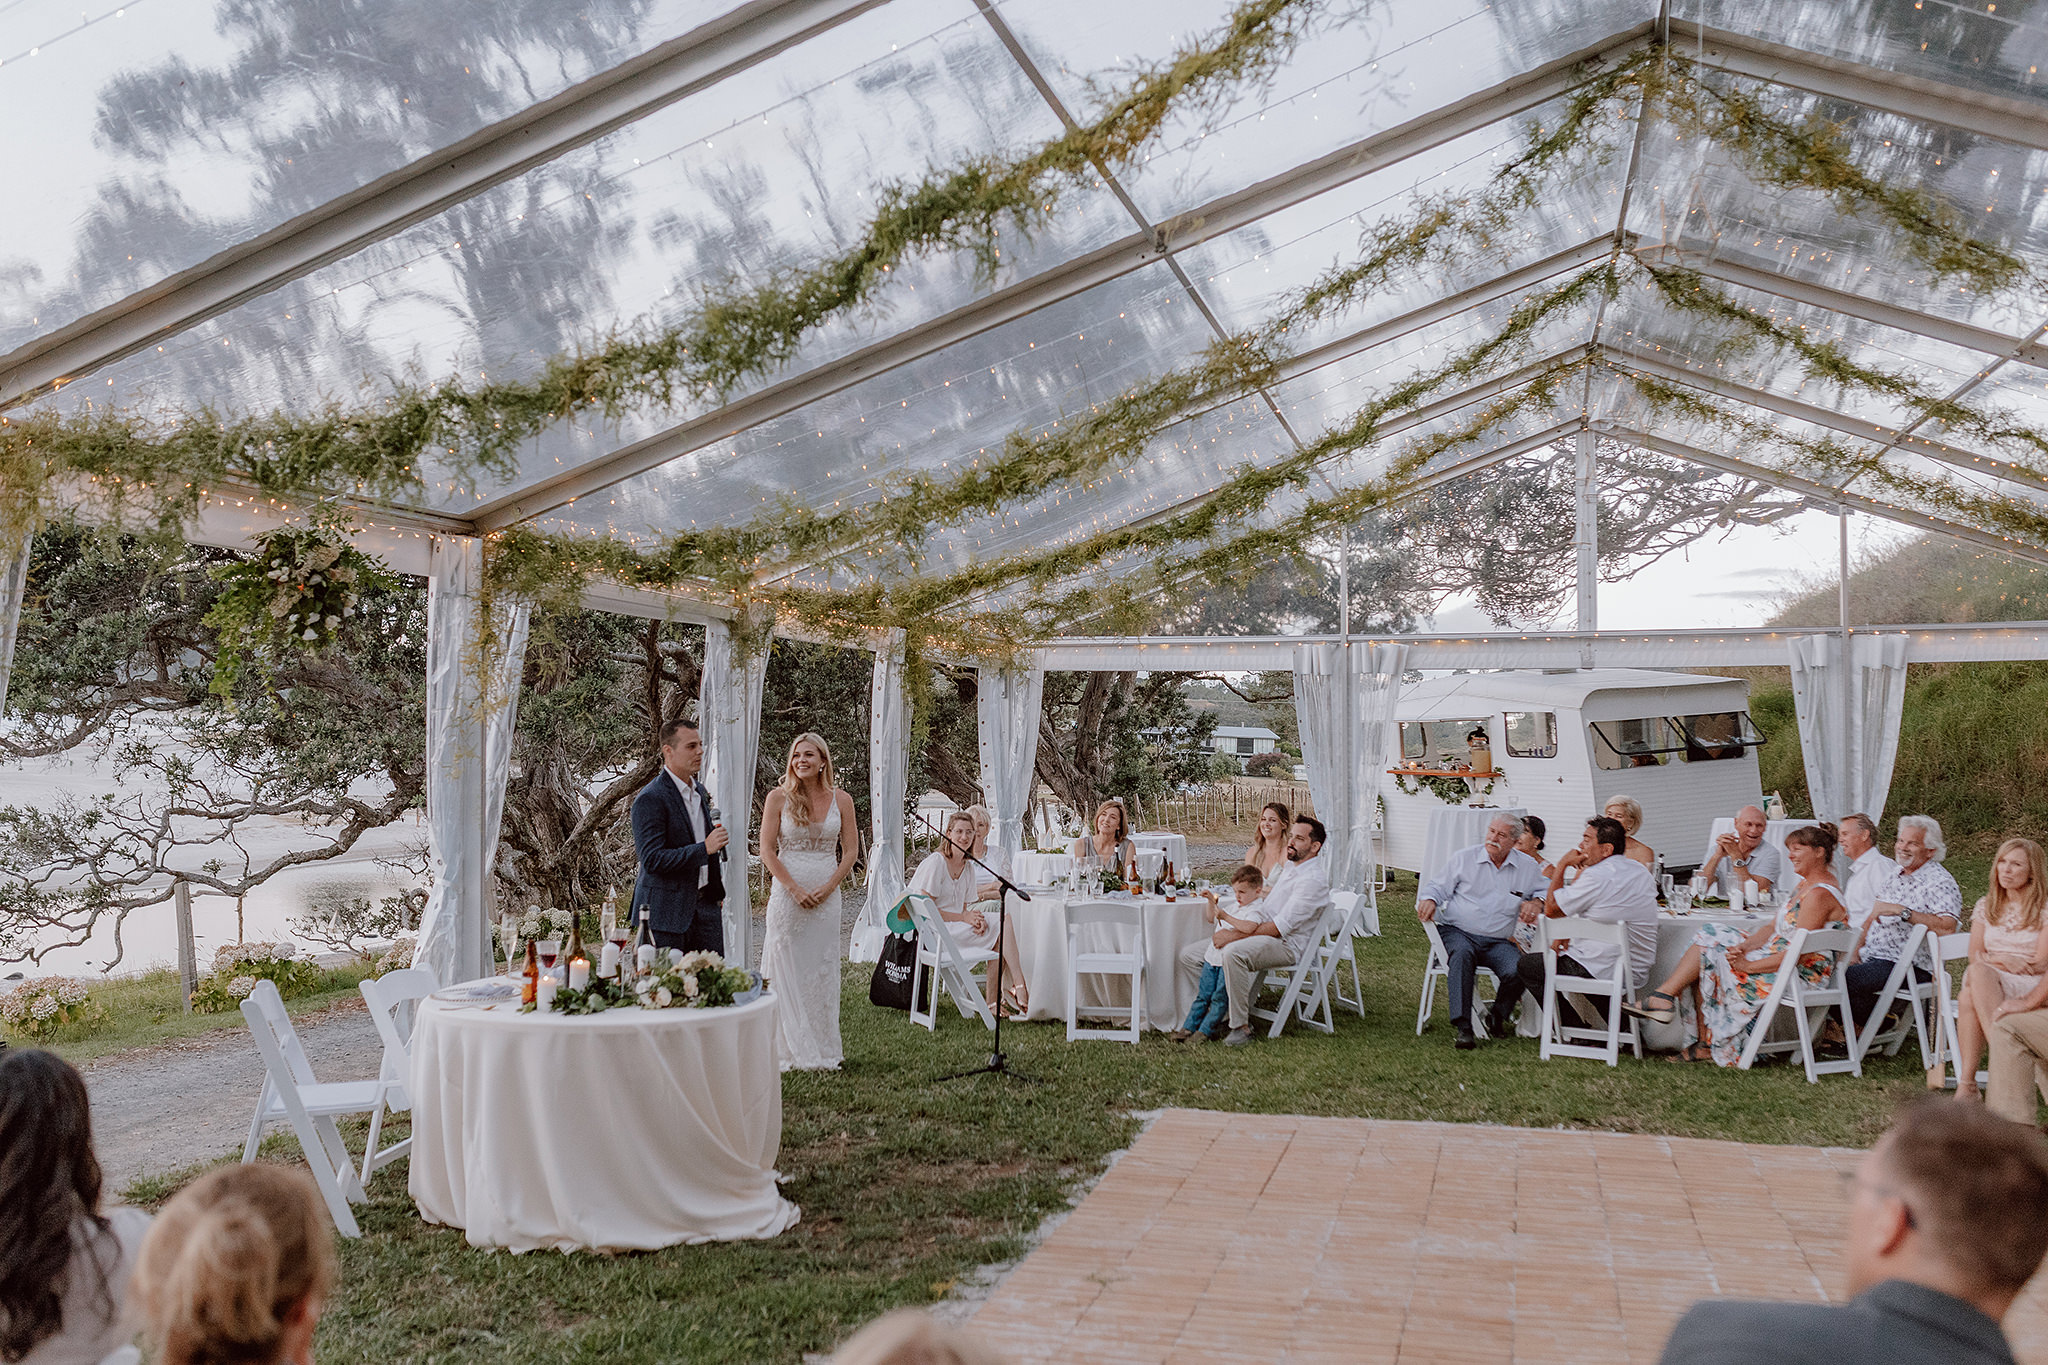 kelly-logan-whangapoua-wedding-jackson-bright20190212_0864.jpg